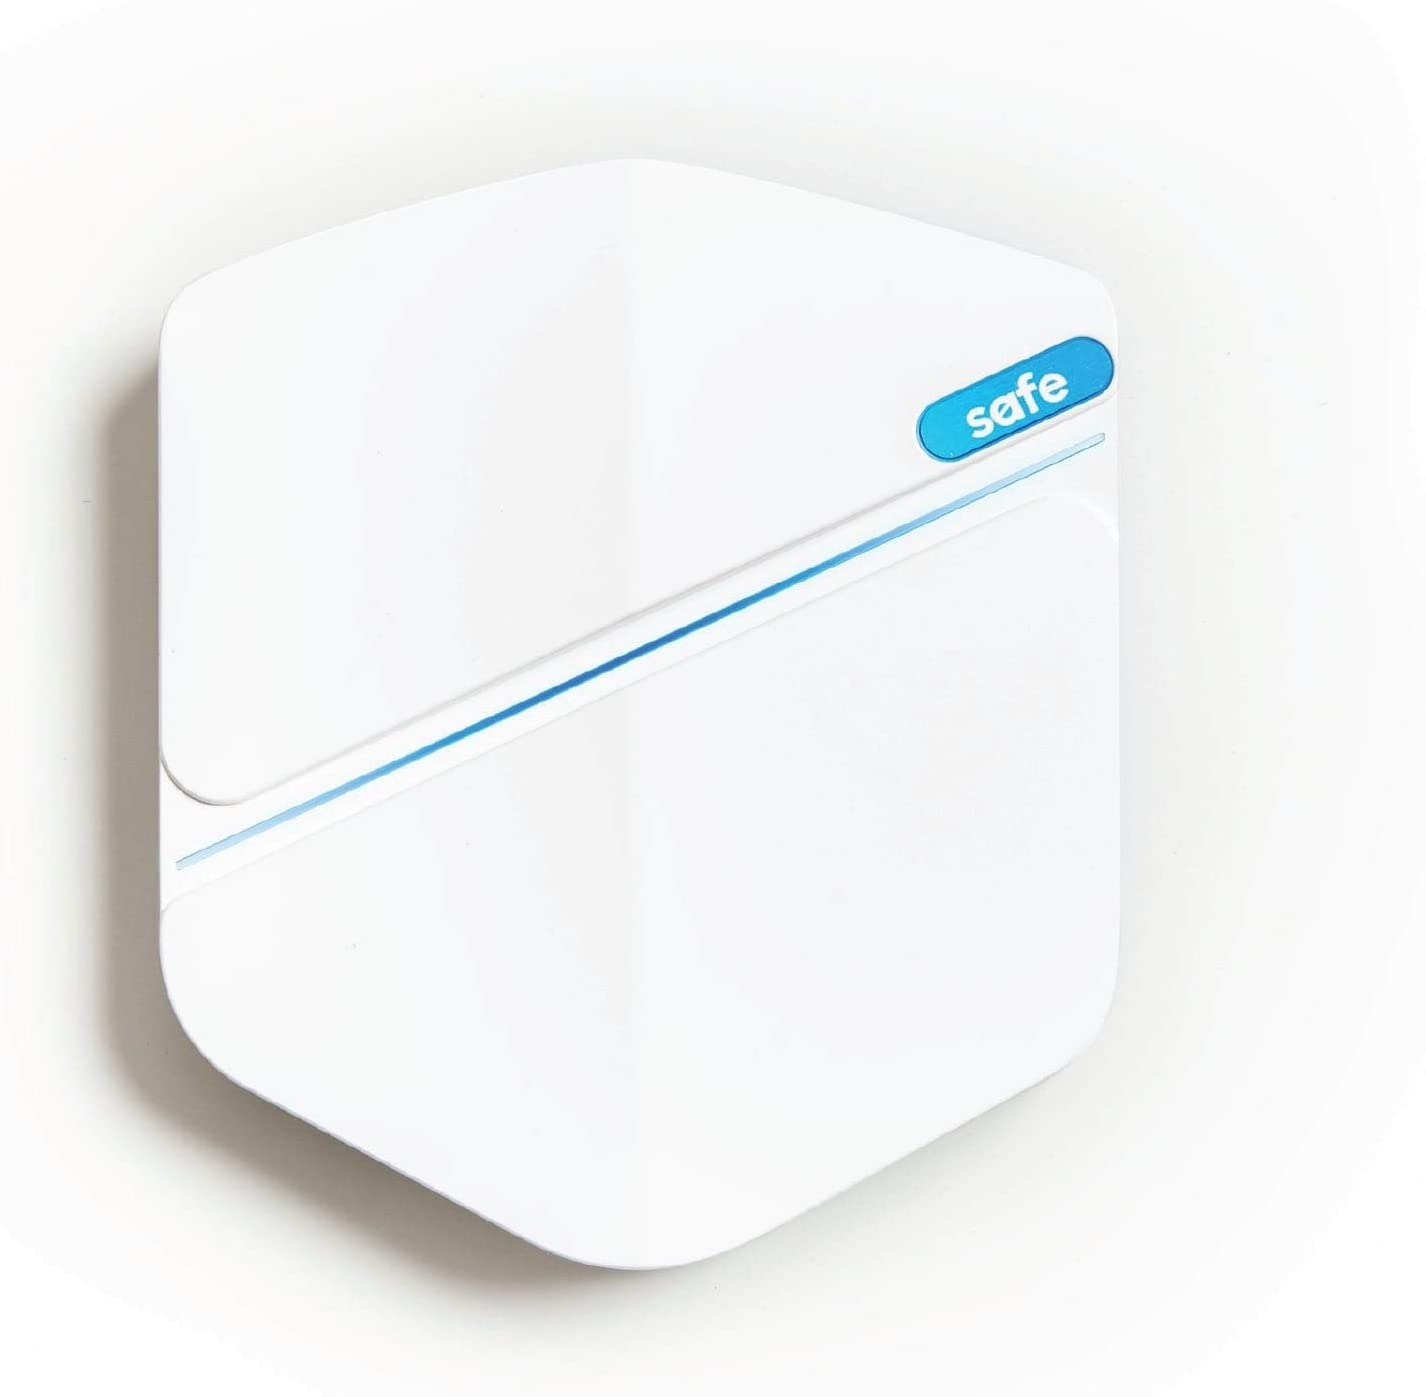 HUB6 Safe (Safe by HUB6) – Smart Home Monitoring with No Monthly Fees | Use Your Existing Alarm System (Hybrid)